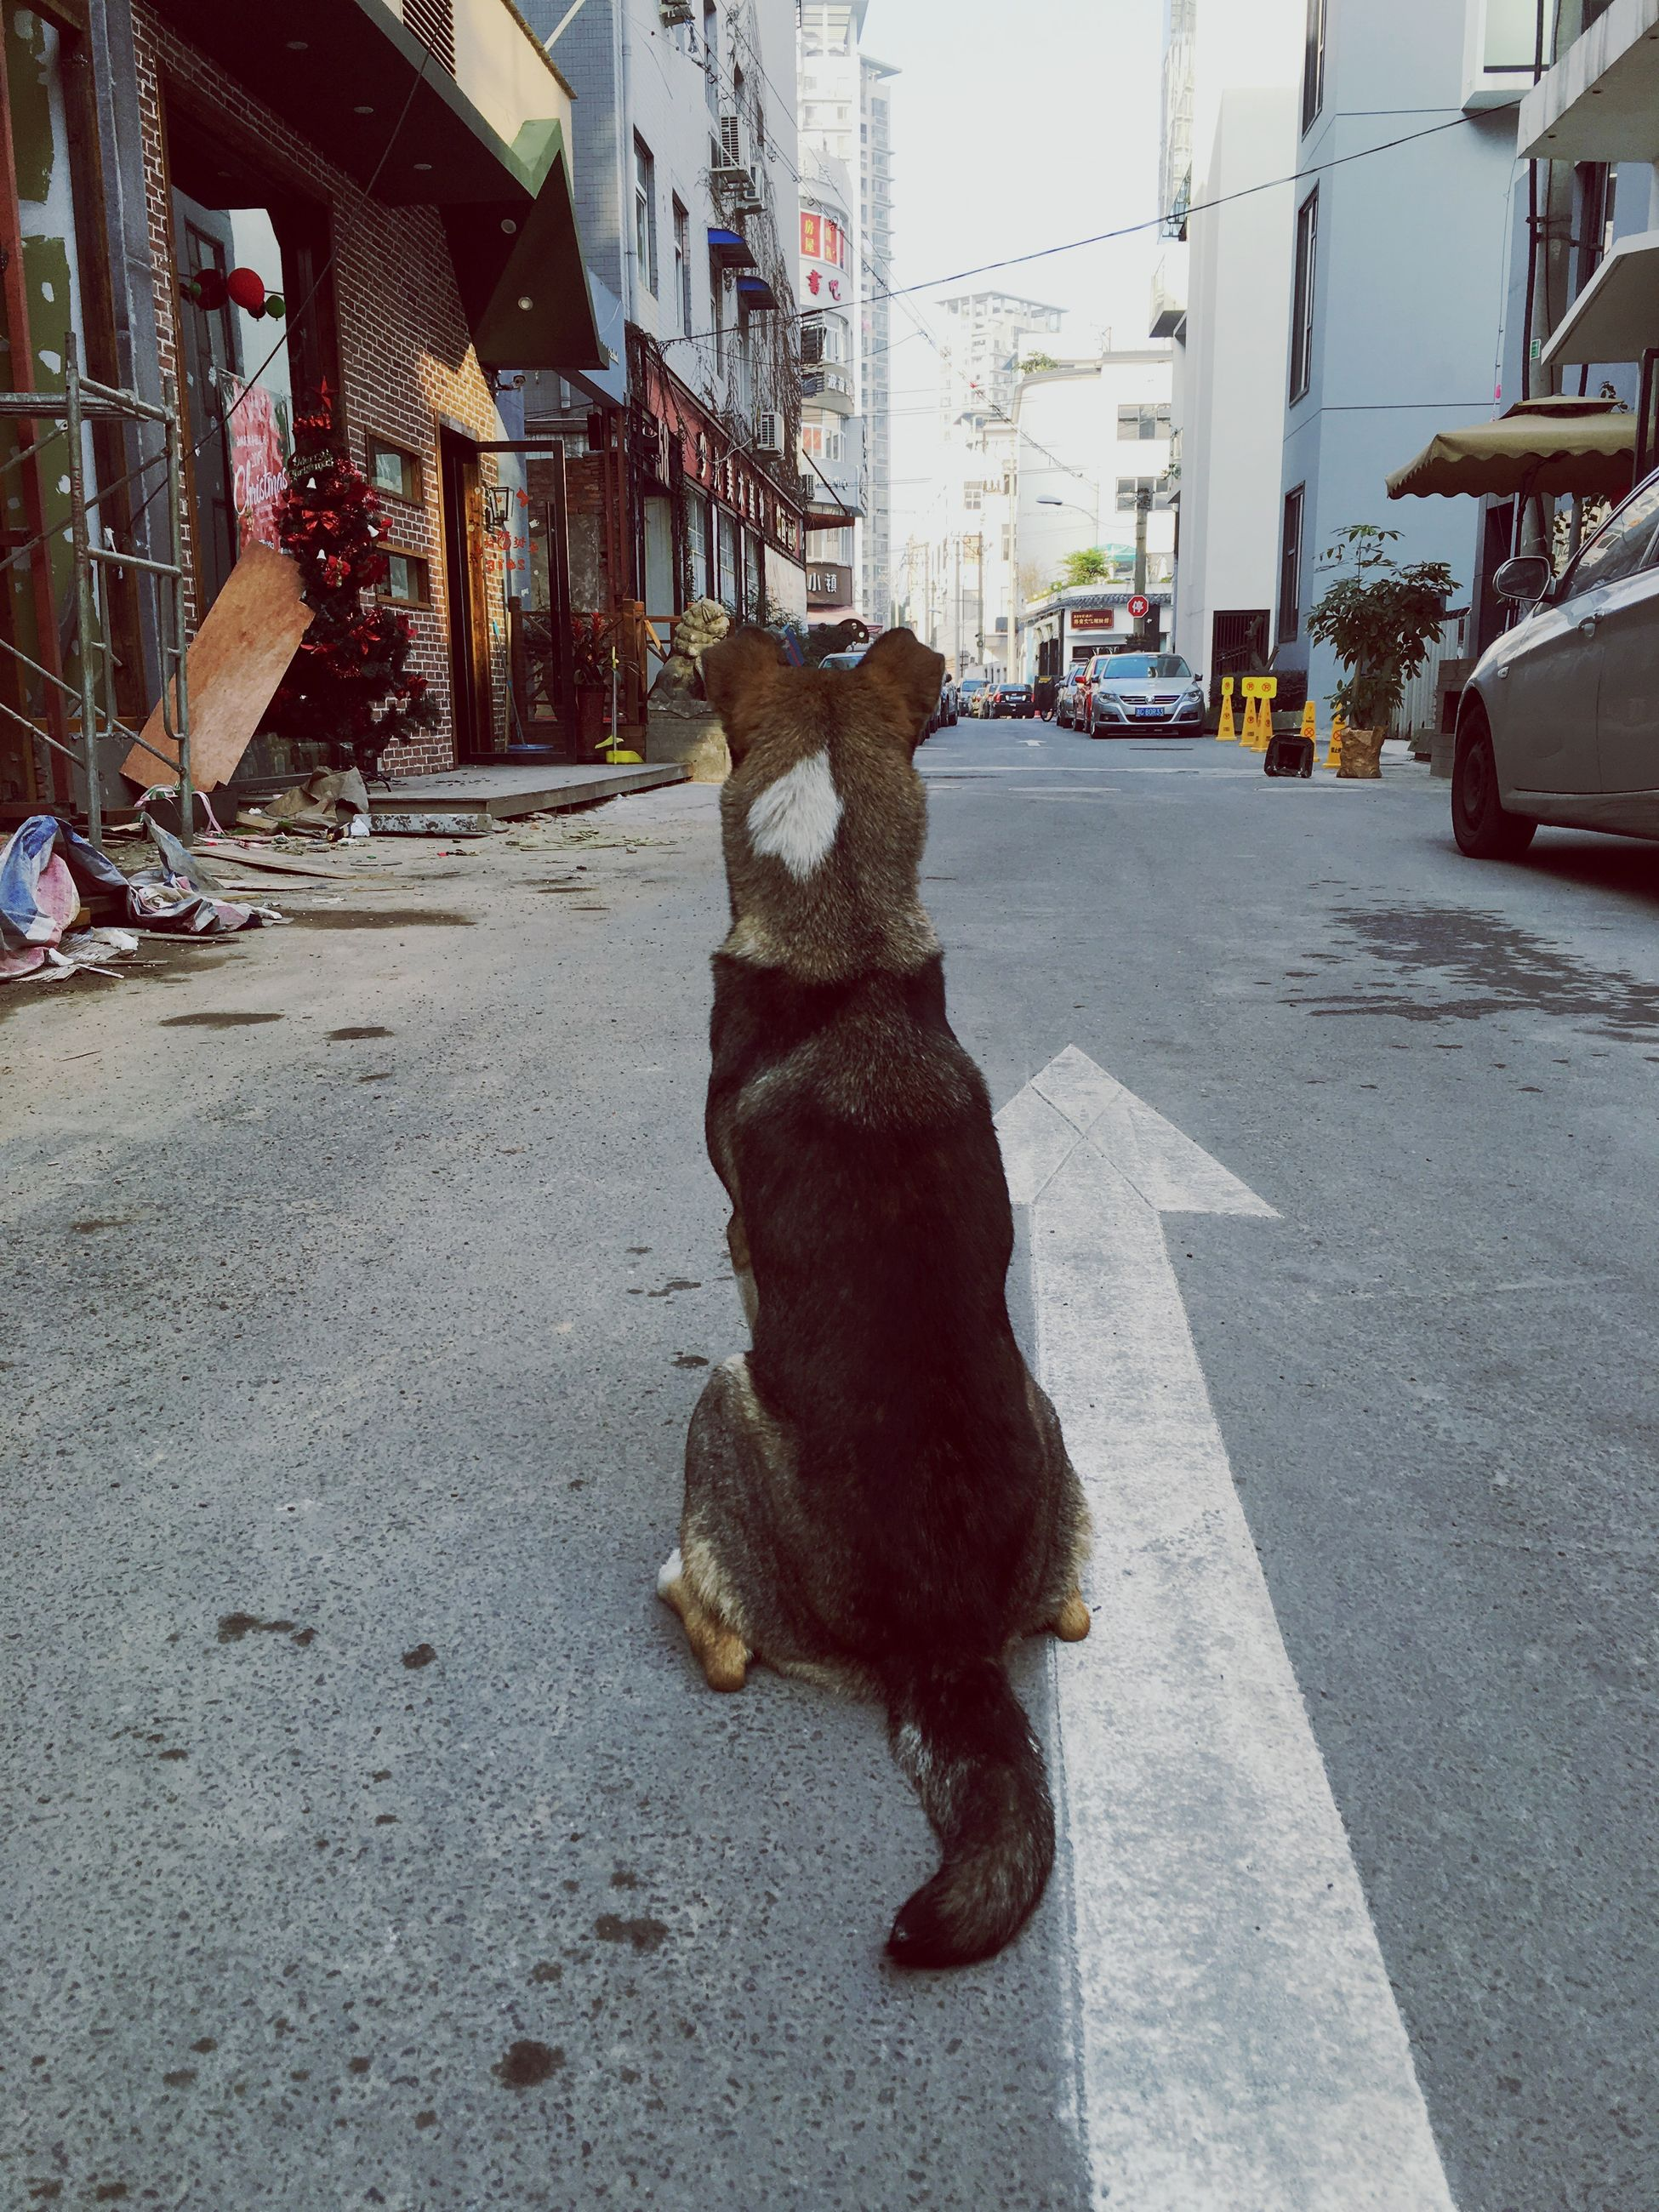 building exterior, street, built structure, architecture, animal themes, one animal, city, domestic animals, dog, pets, car, transportation, sidewalk, mammal, road, cobblestone, outdoors, day, incidental people, walking